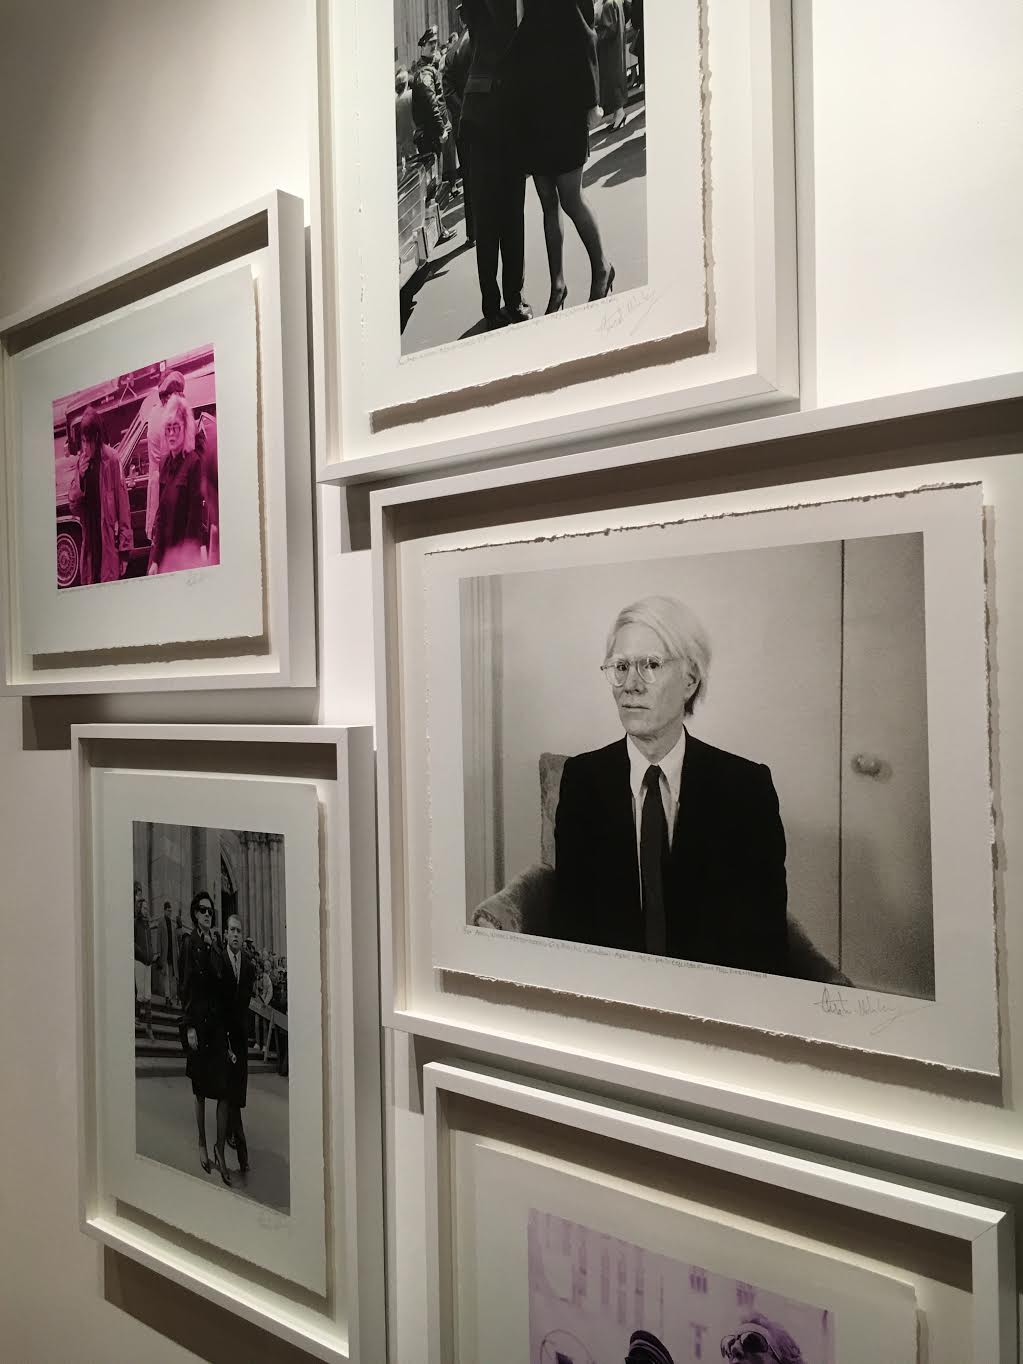 Exploring our affinity for Andy Warhol  two local galleries pay homage